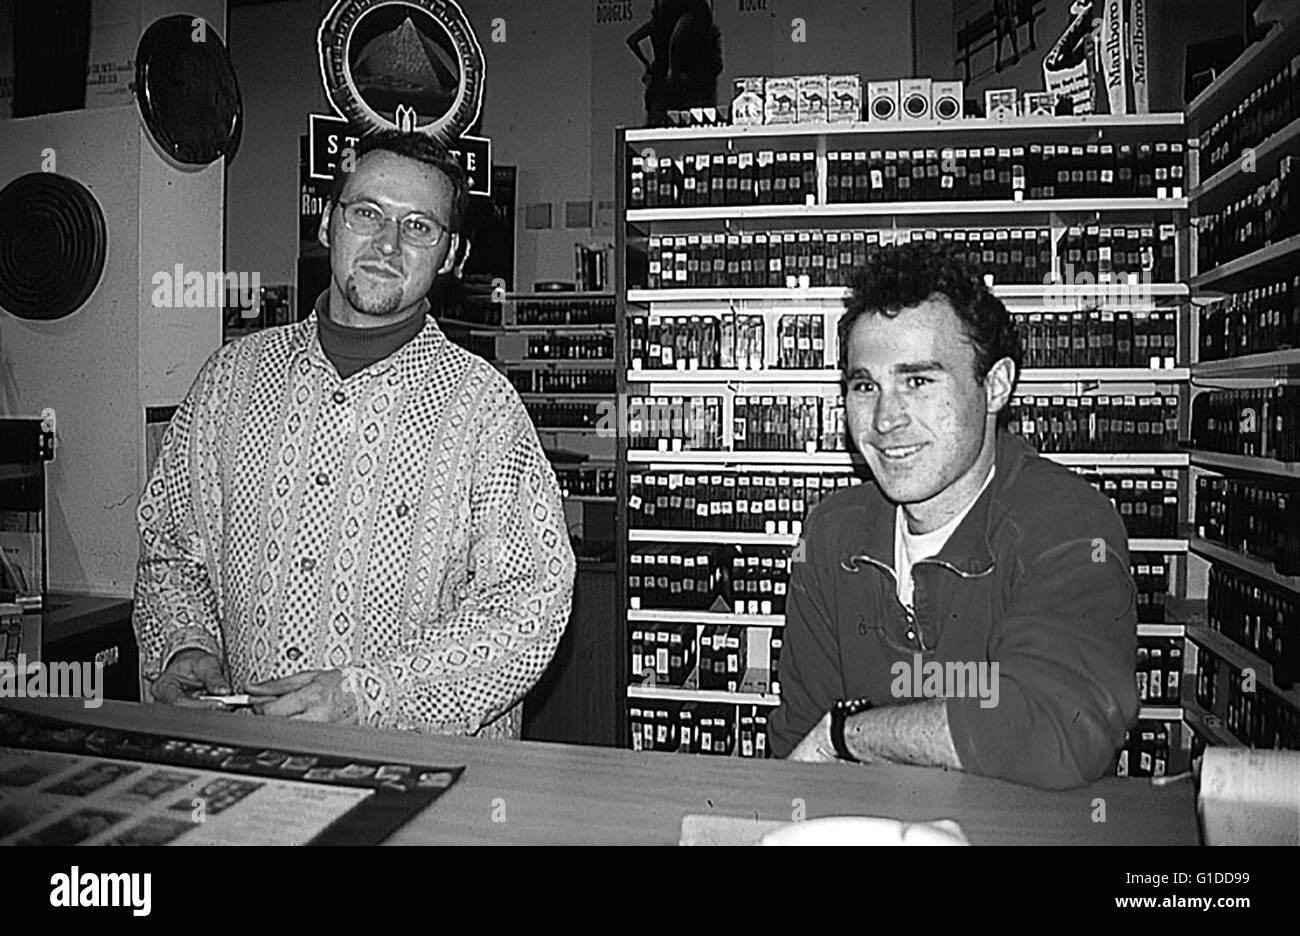 Marko, Patrik / Peter Mayer (Inhaber Krey's Video Center) / Videothek (Einrichtung, innen), Stock Photo